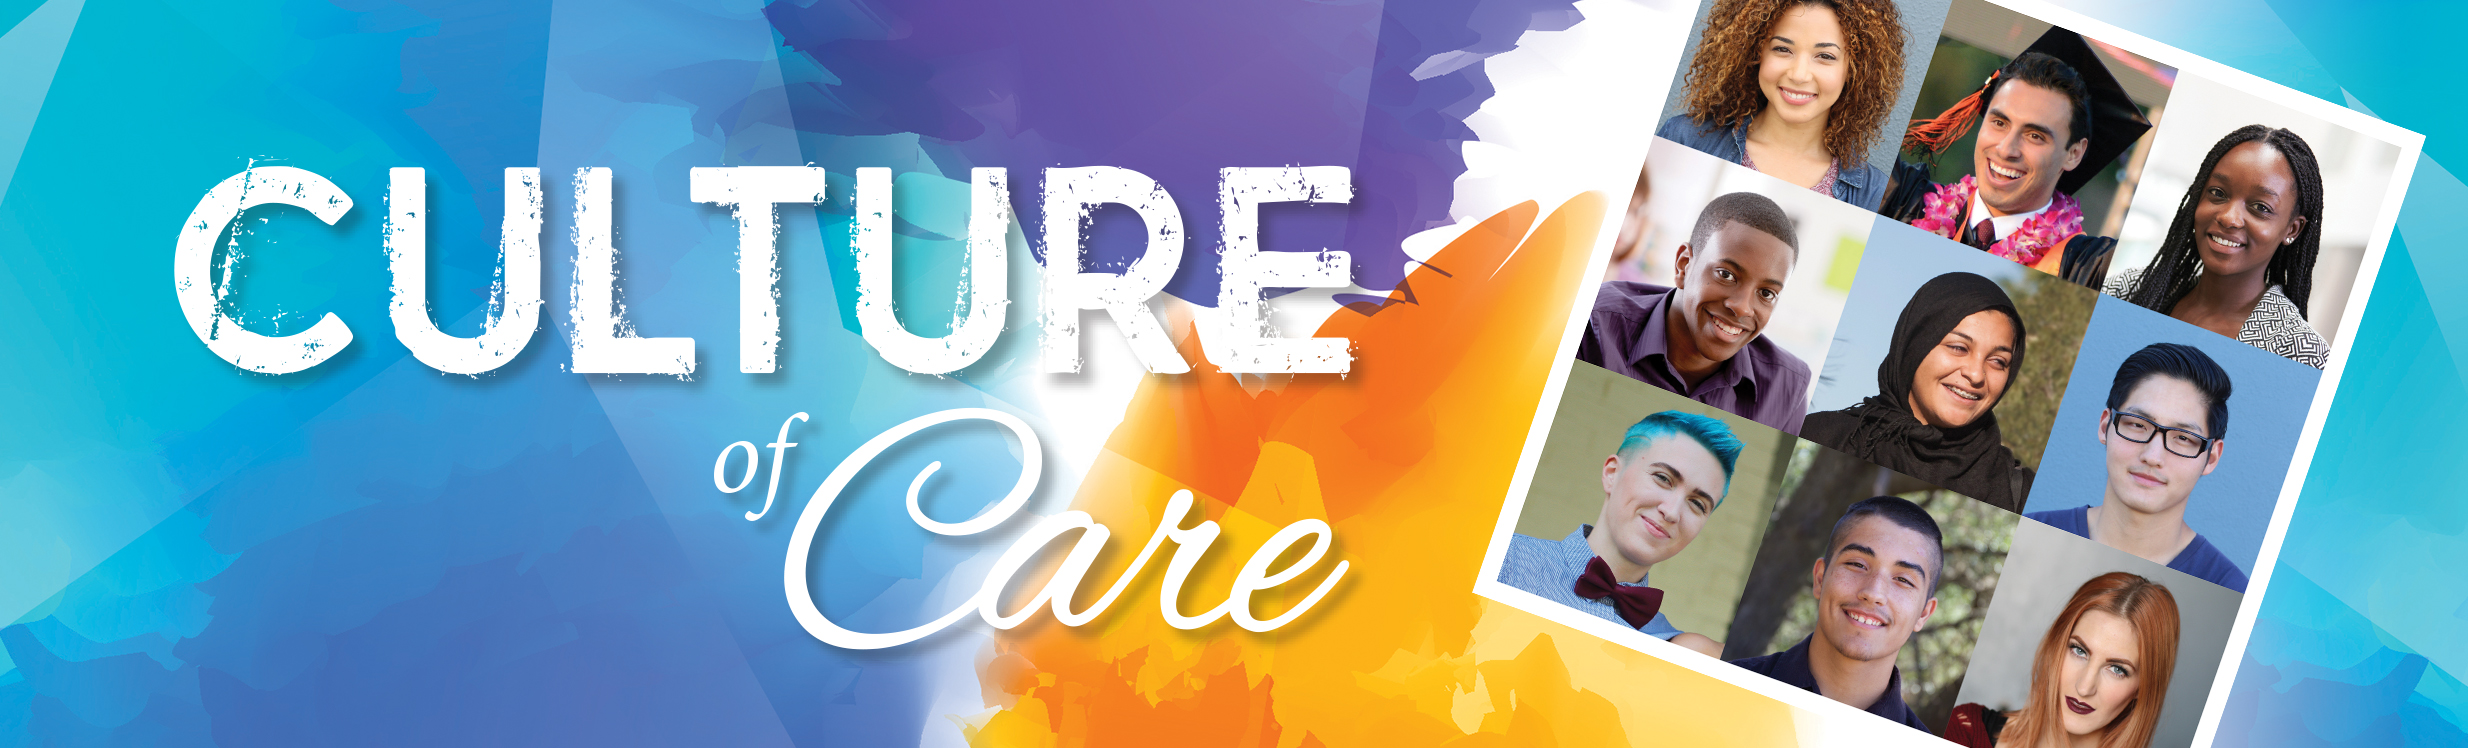 Culture of Care Banner